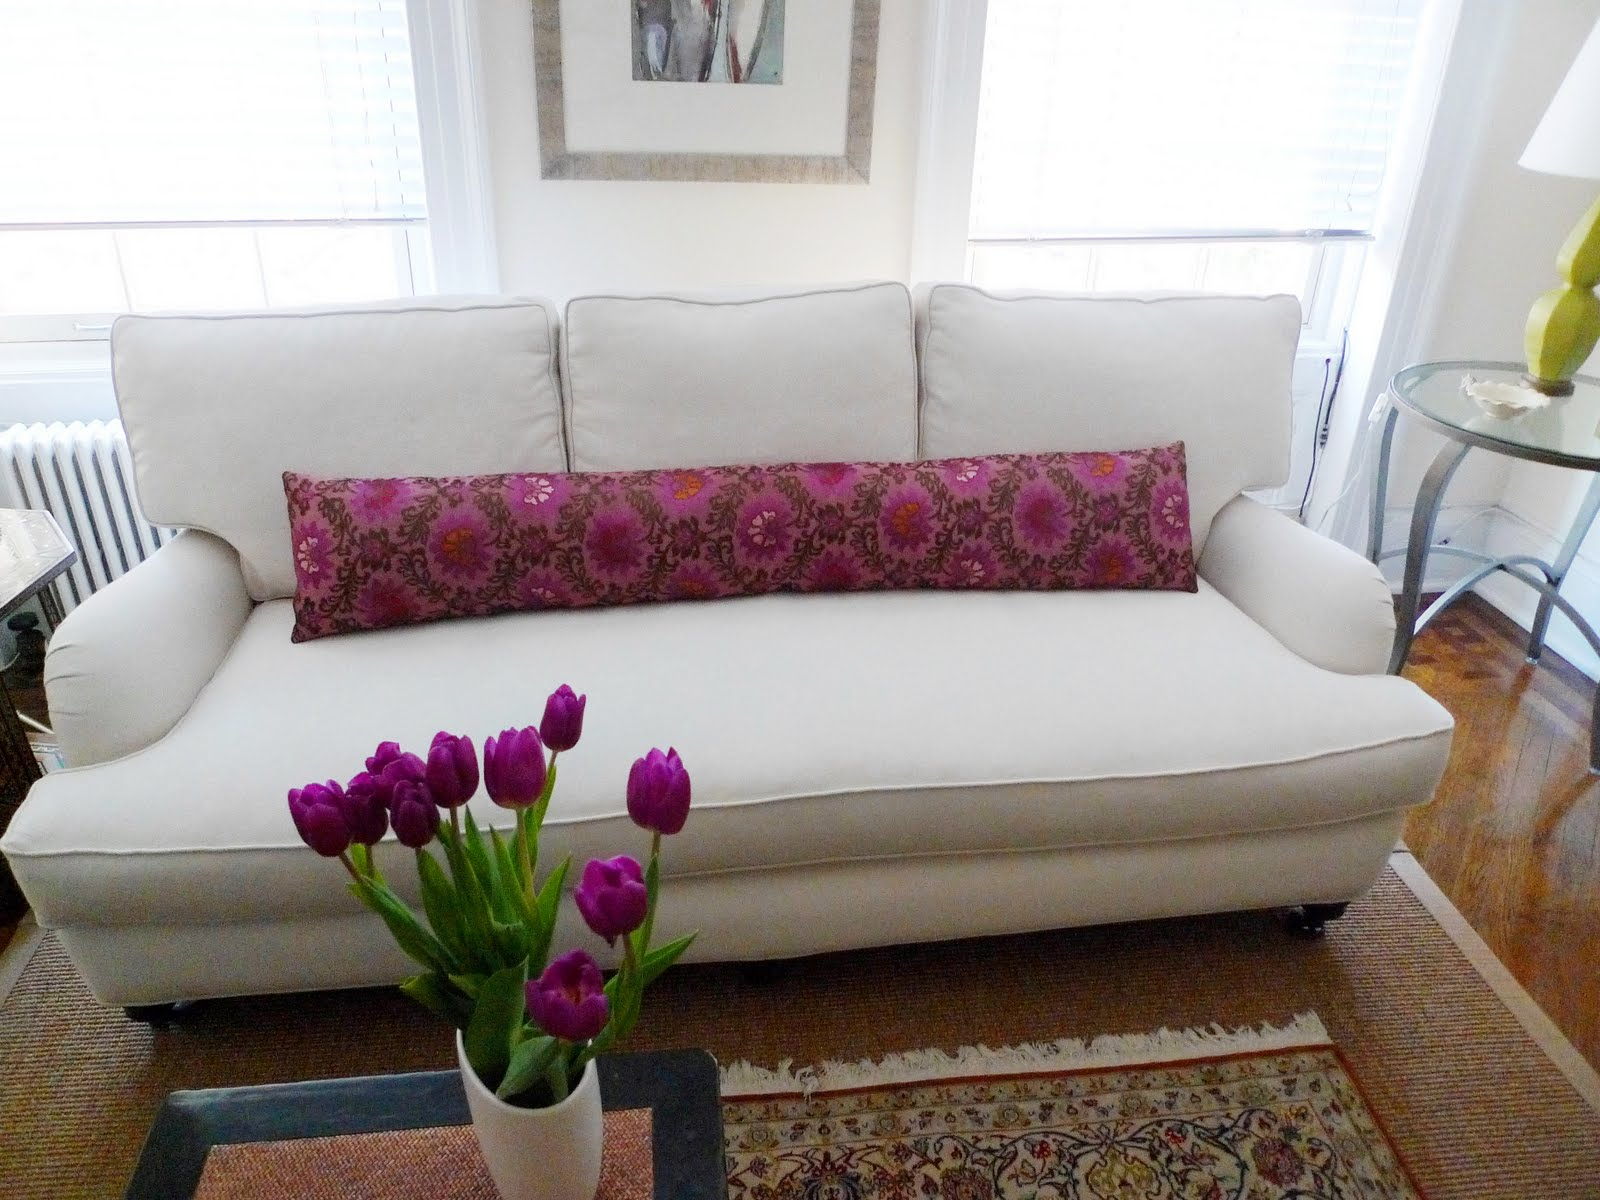 Sofa Redo Pit Sectional Cococozy Before And After Micro Makeover Anatomy Of A